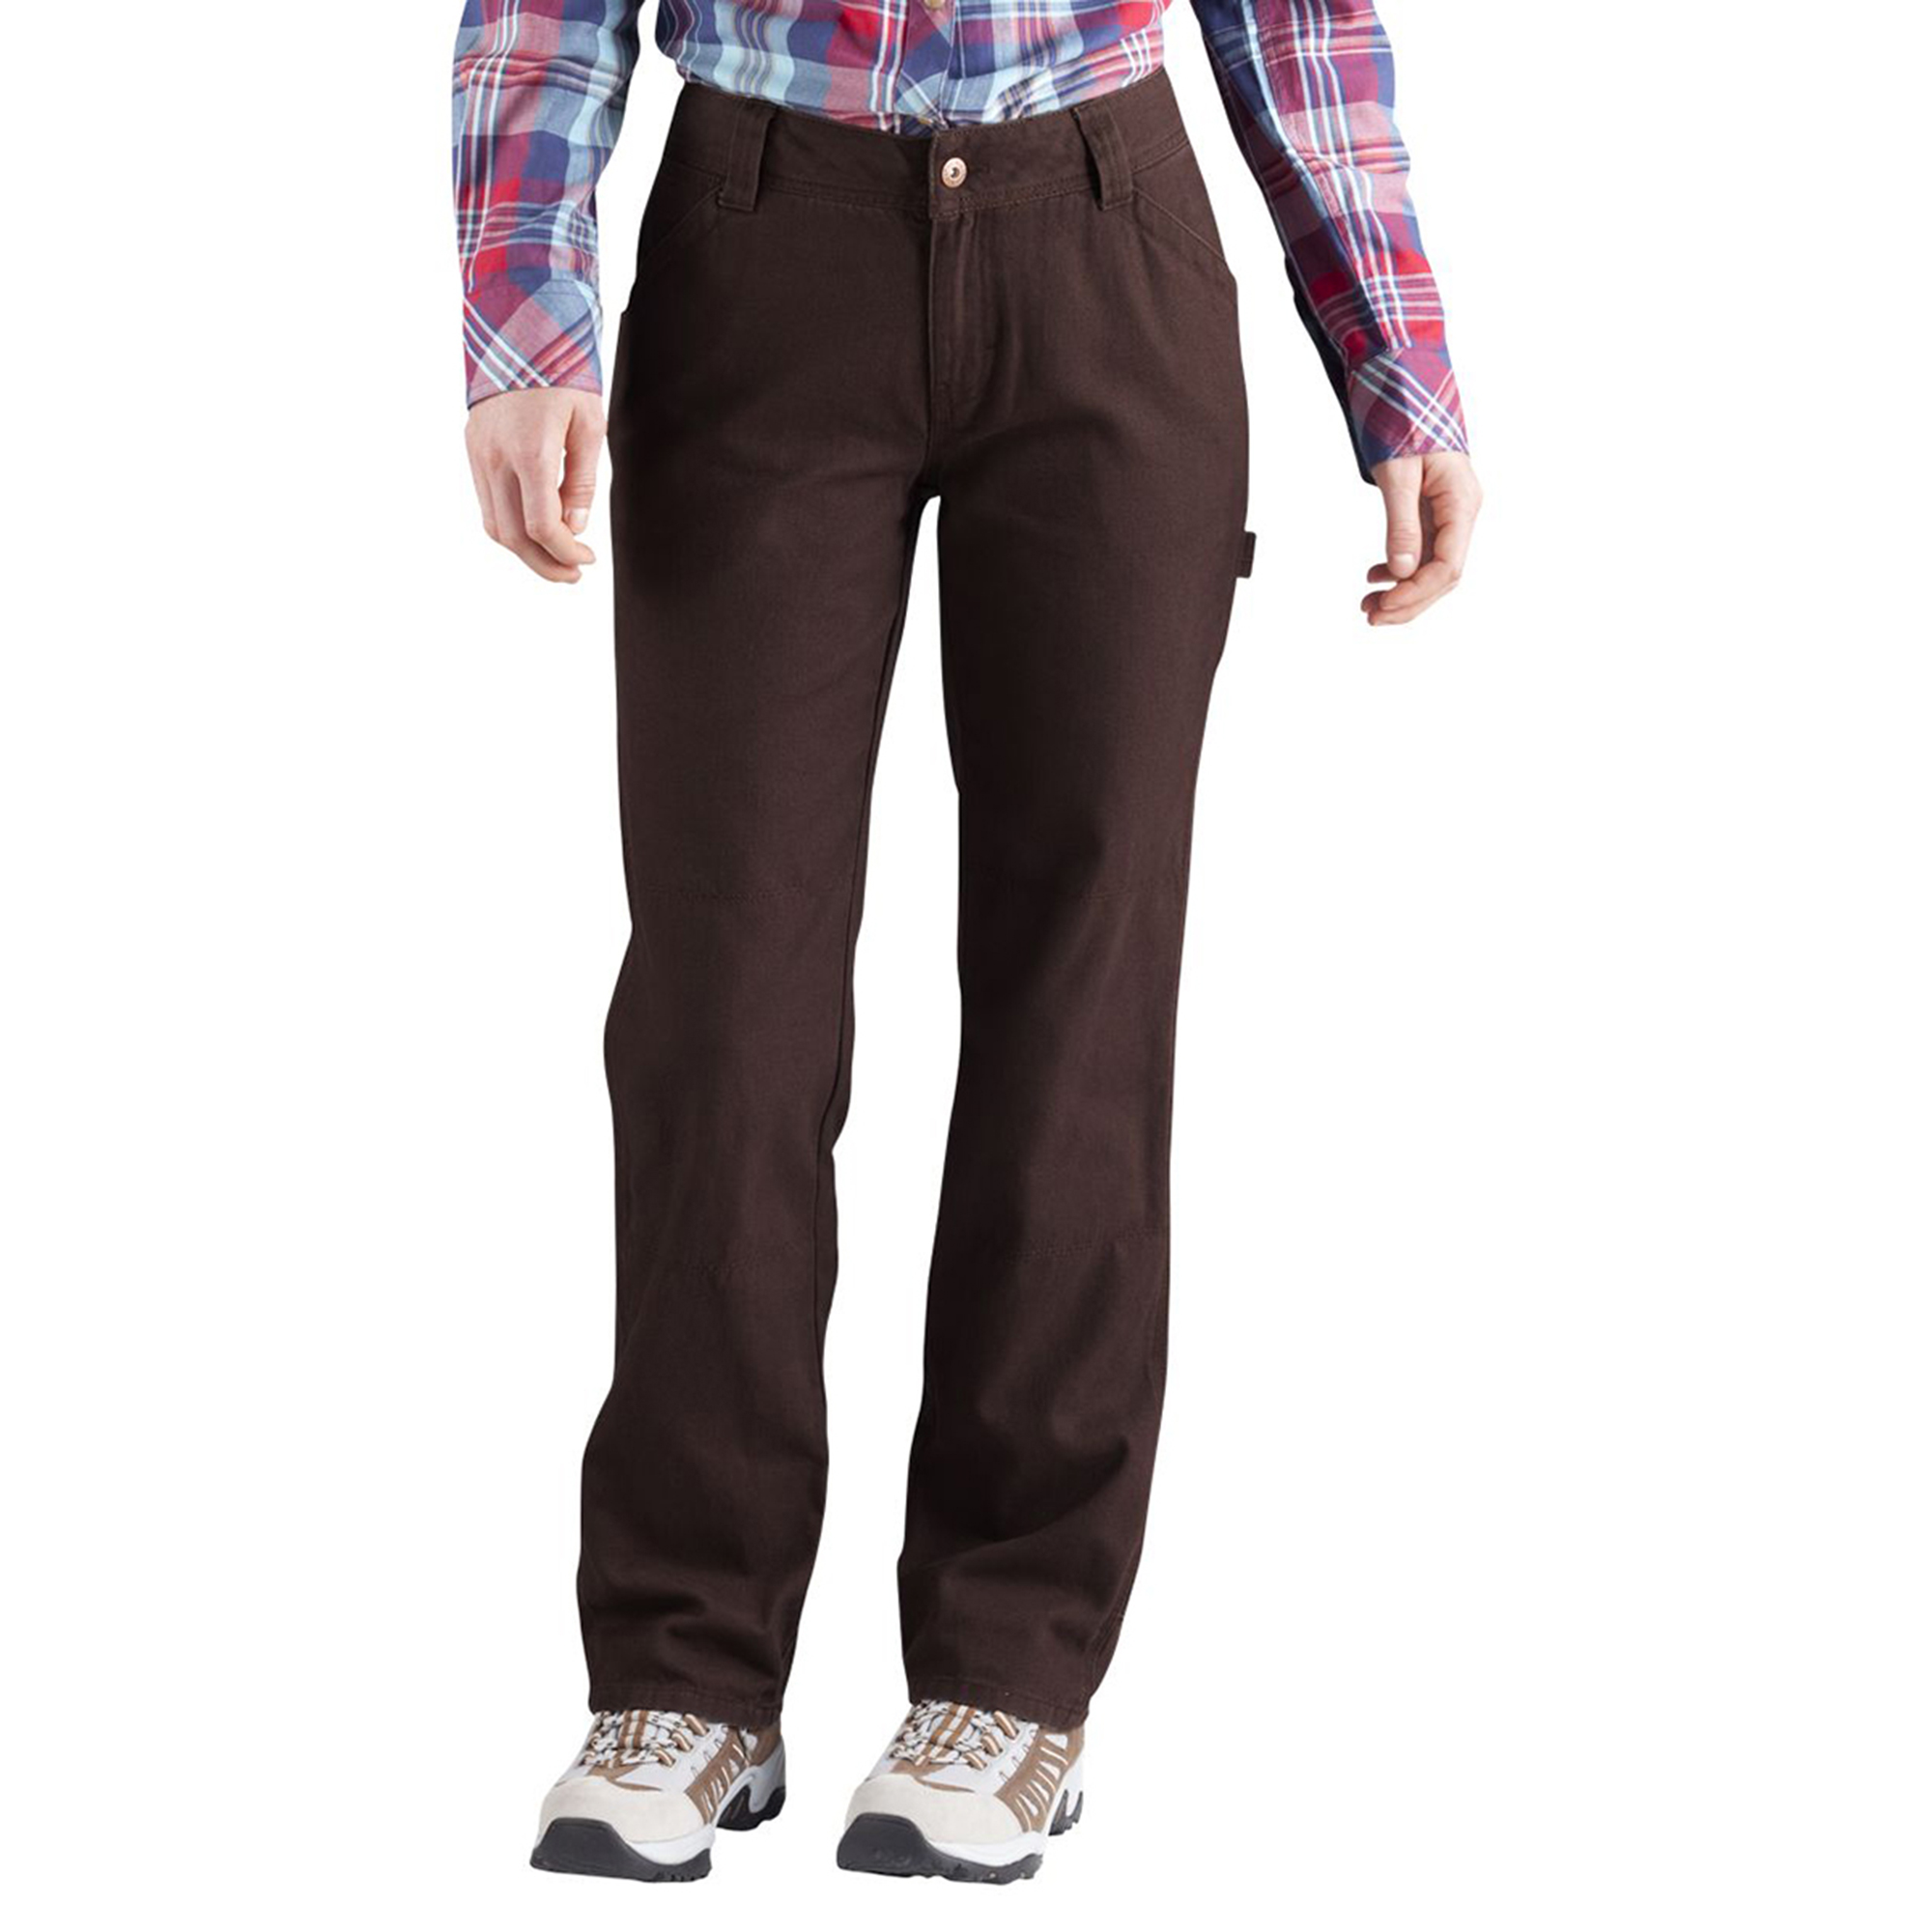 Dickies FD2300 Women's Relaxed Fit Straight Leg Carpenter Pant at Sears.com